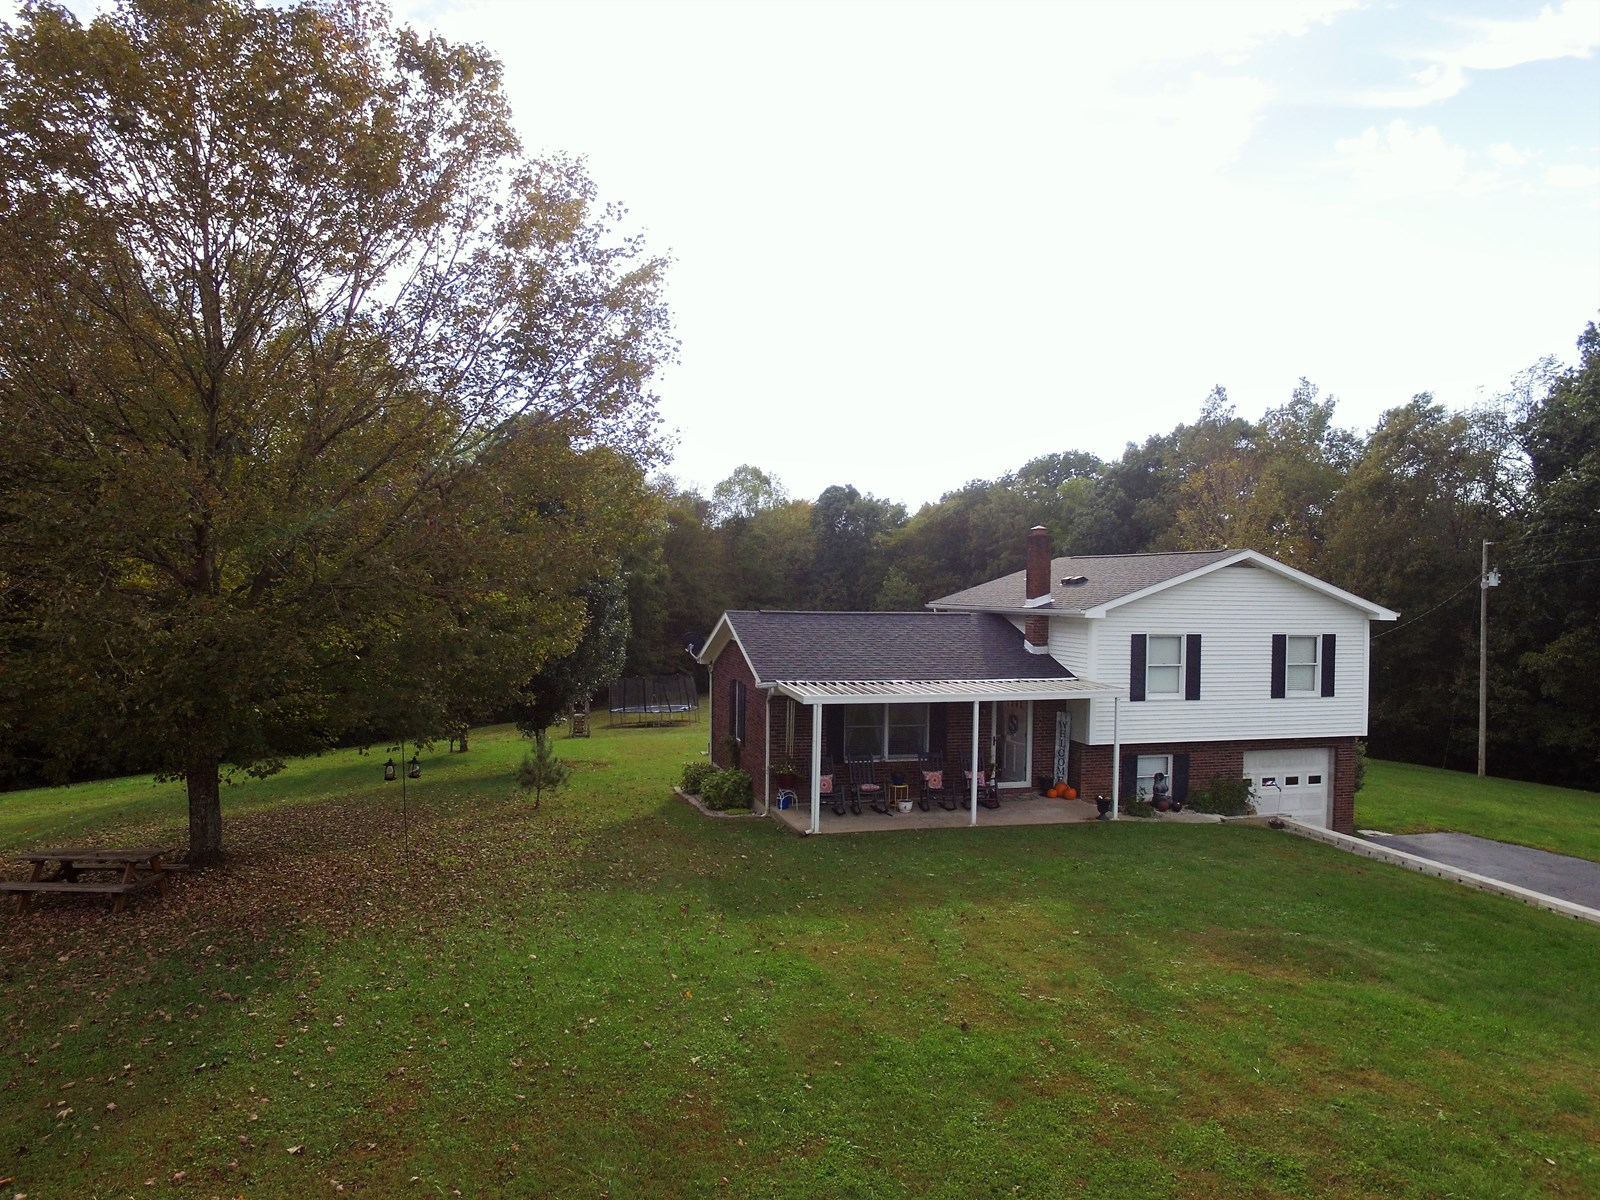 COUNTRY HOME ON 8.3 ACRES IN CENTRAL KENTUCKY